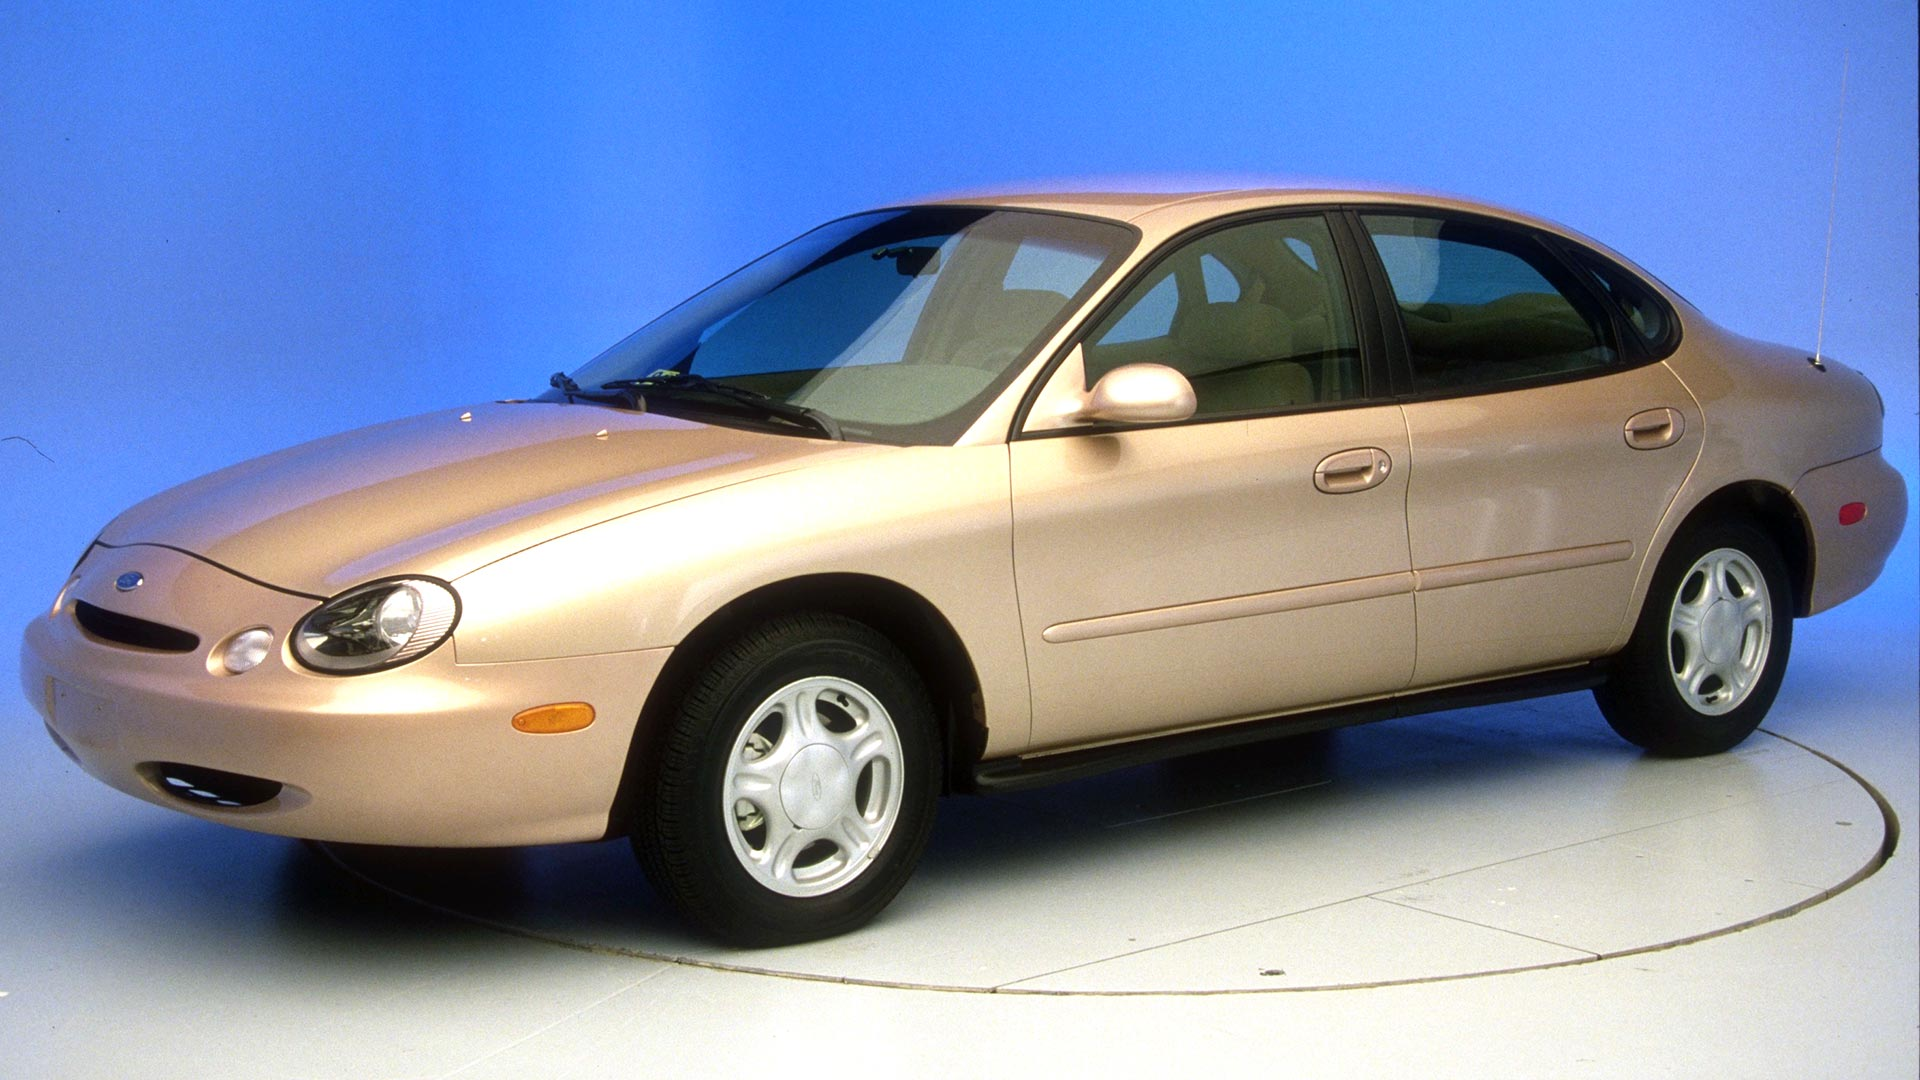 1999 Ford Taurus 4-door sedan